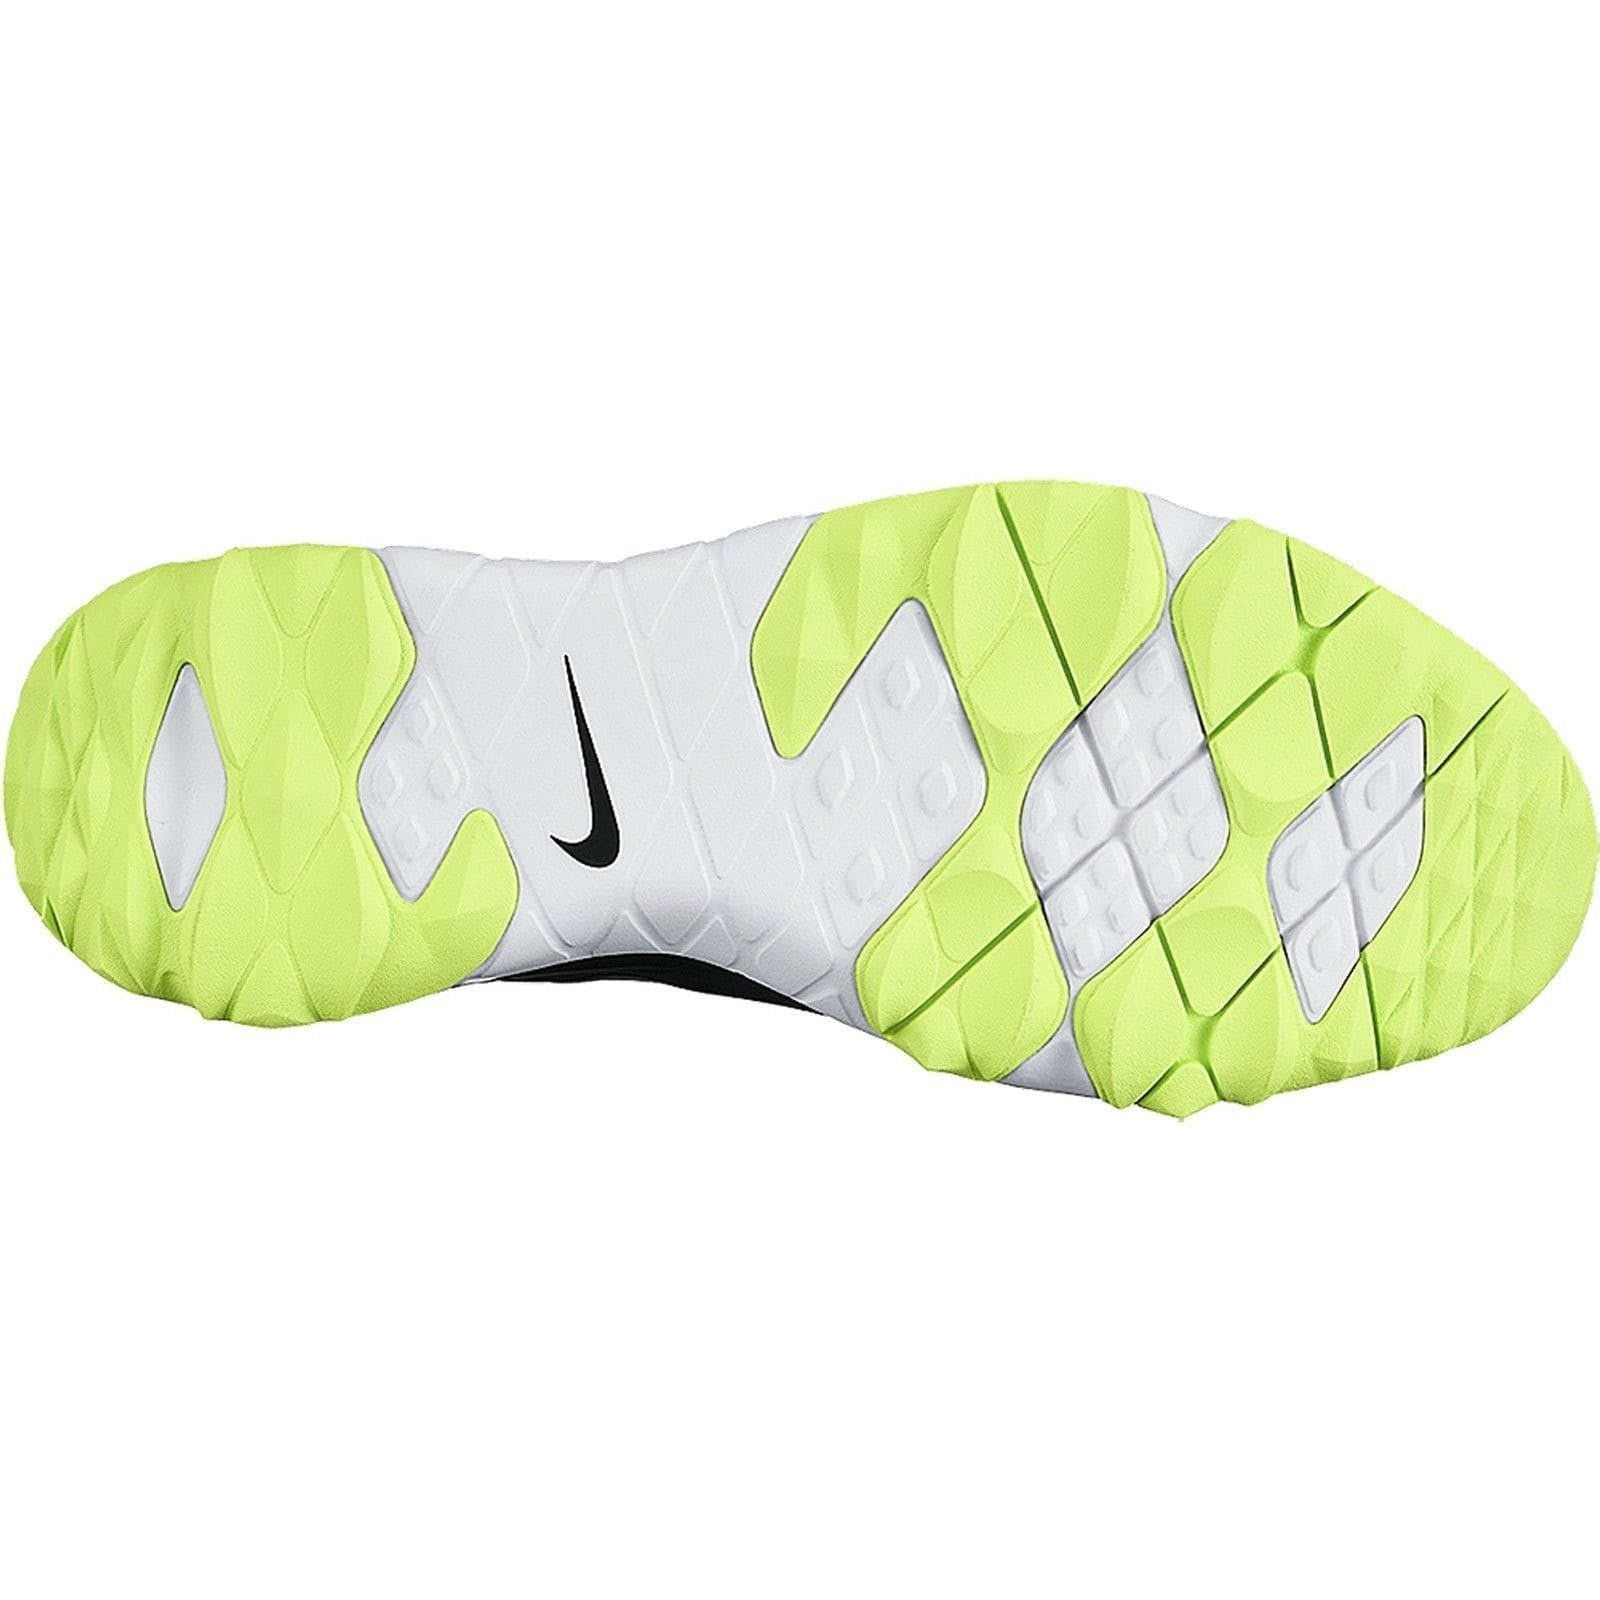 084fd889dffc8 Shop Nike Men s FI Impact Black Volt White Golf Shoes 611510-007 - Free  Shipping Today - Overstock - 19748354